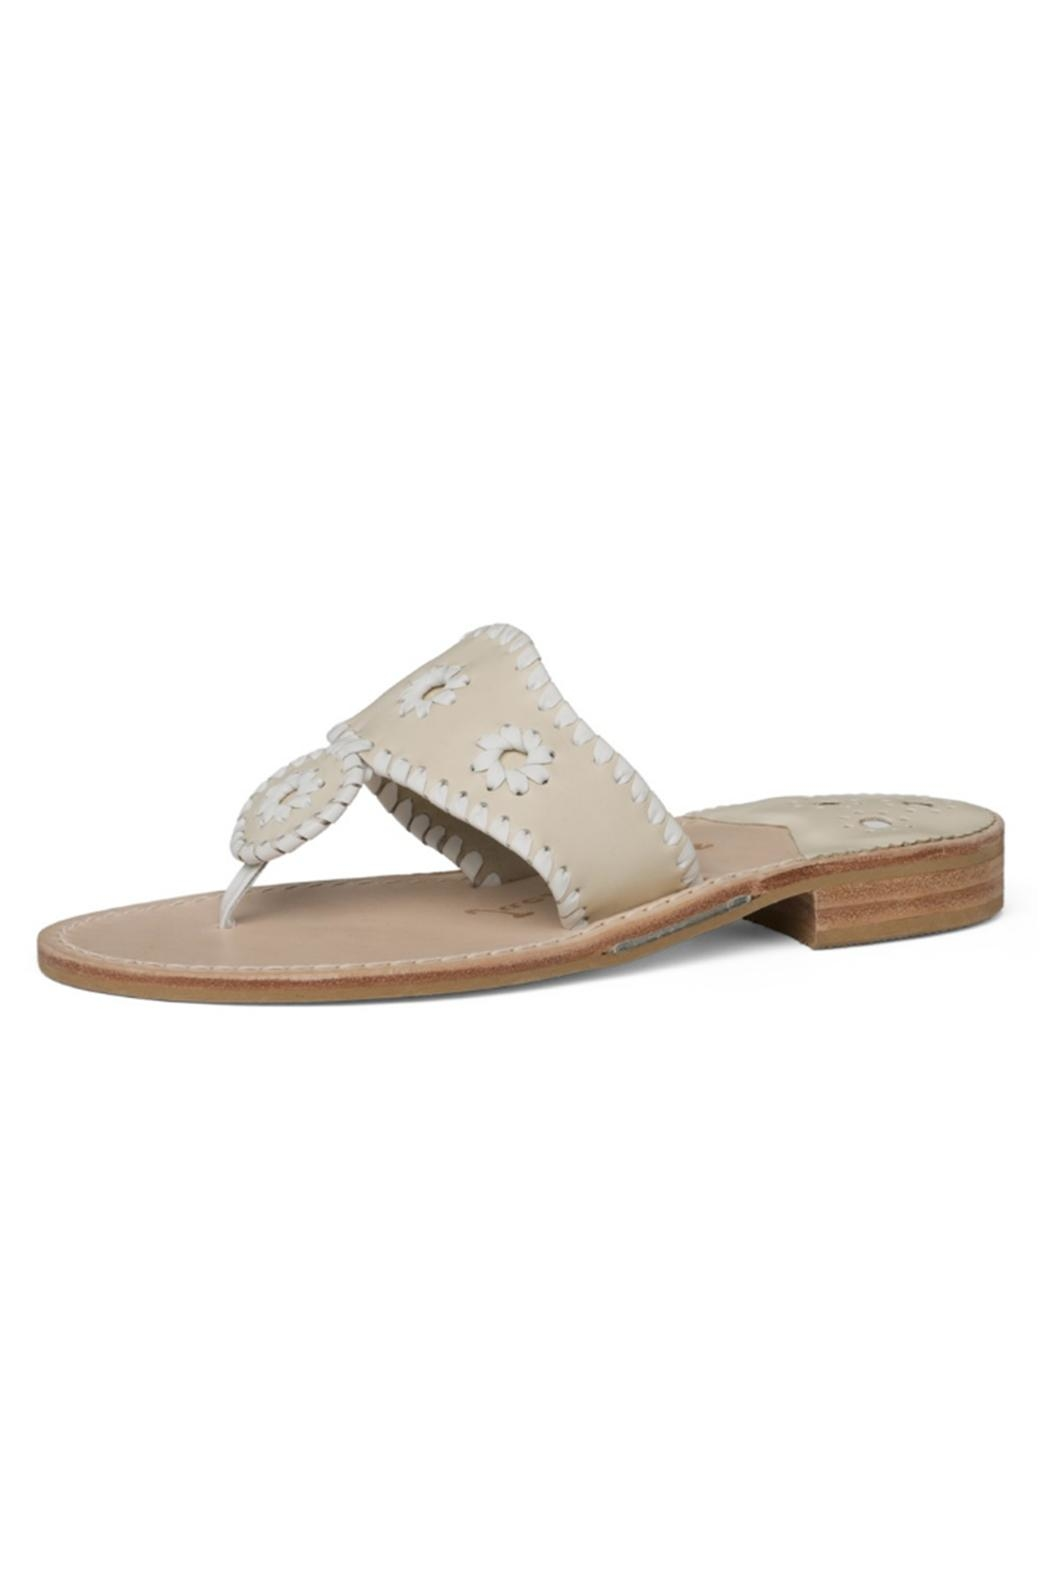 Jack Rogers Palm Beach Sandal - Front Cropped Image